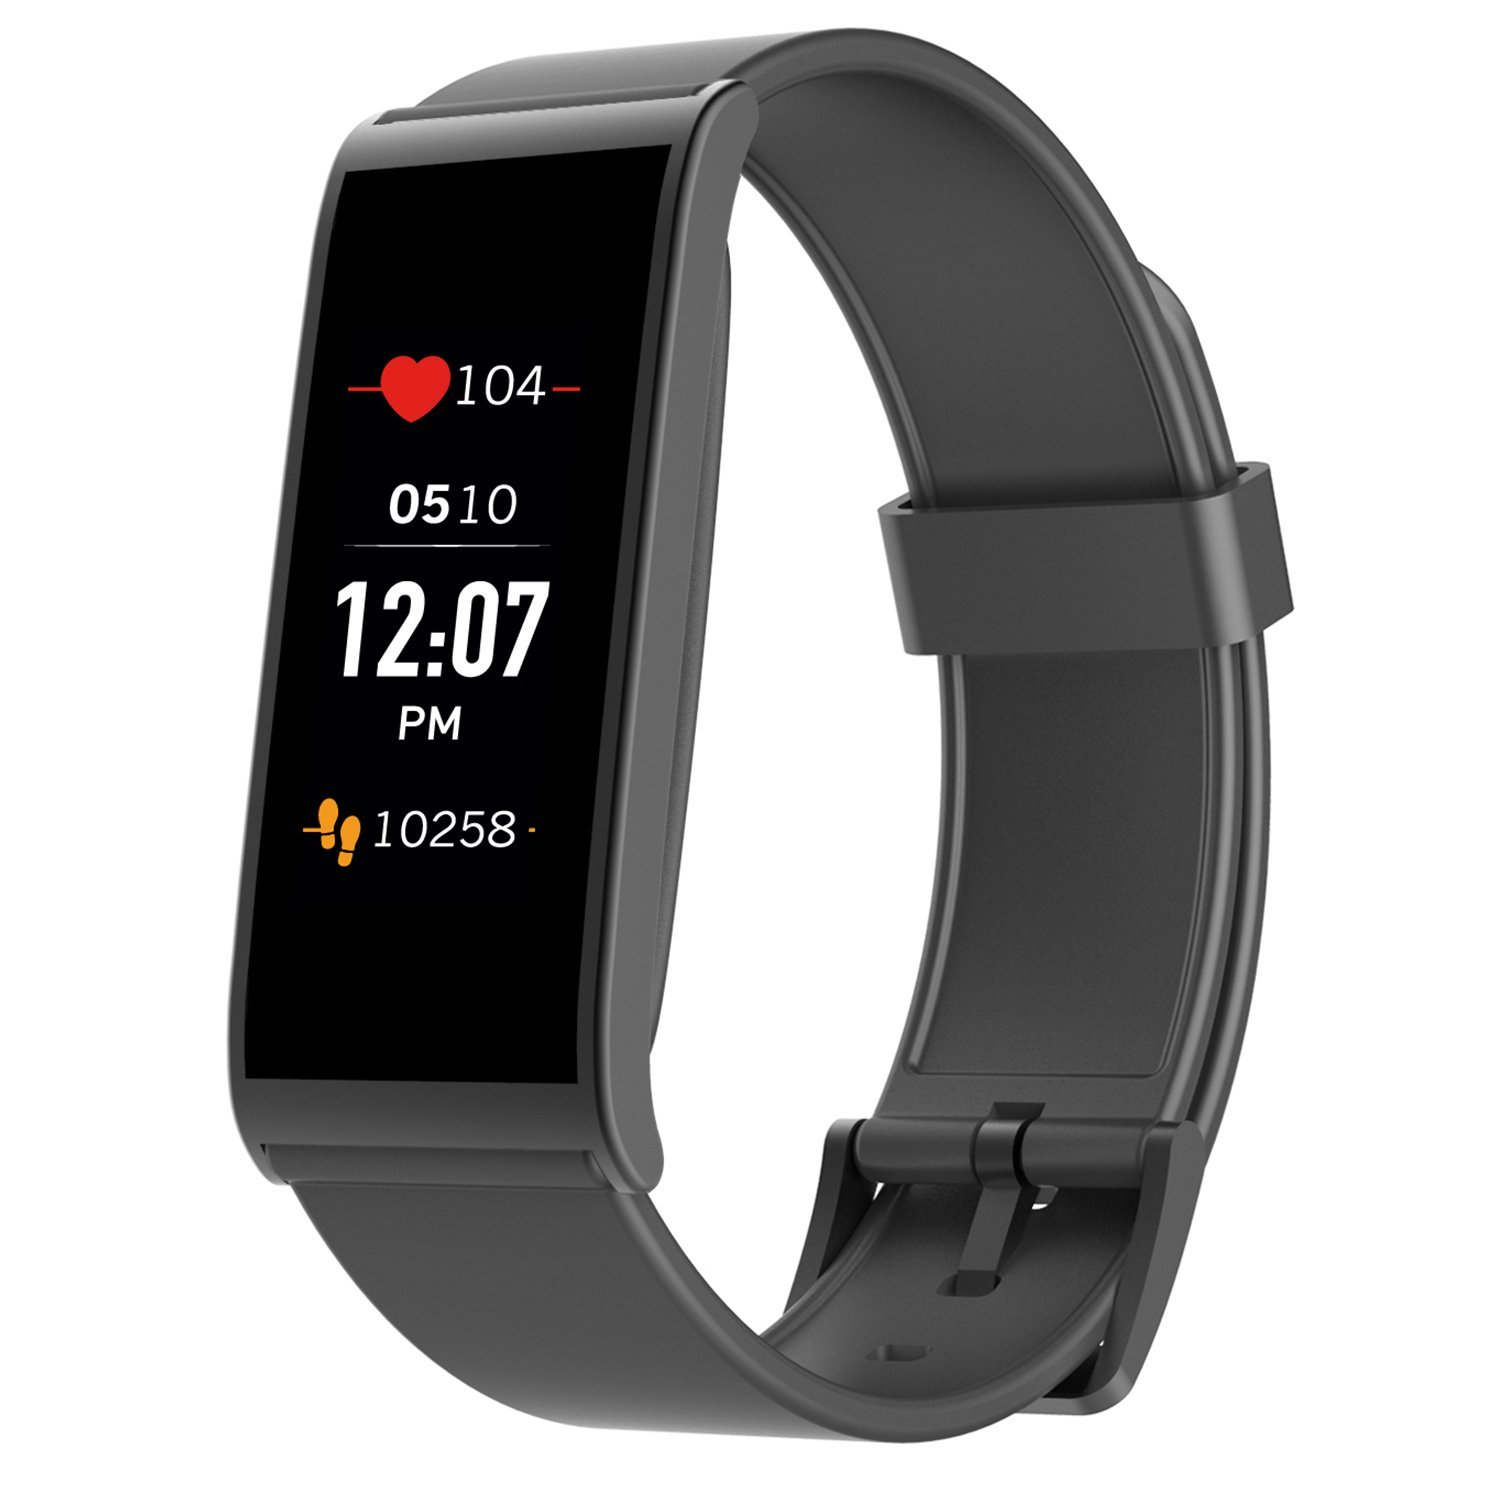 MyKronoz ZeFit4 HR Fitness Activity Tracker with Heart Rate Monitoring, Color Touchscreen & Smart Notifications - Black/Black - NEW Never Opened Box - Certified Renewed